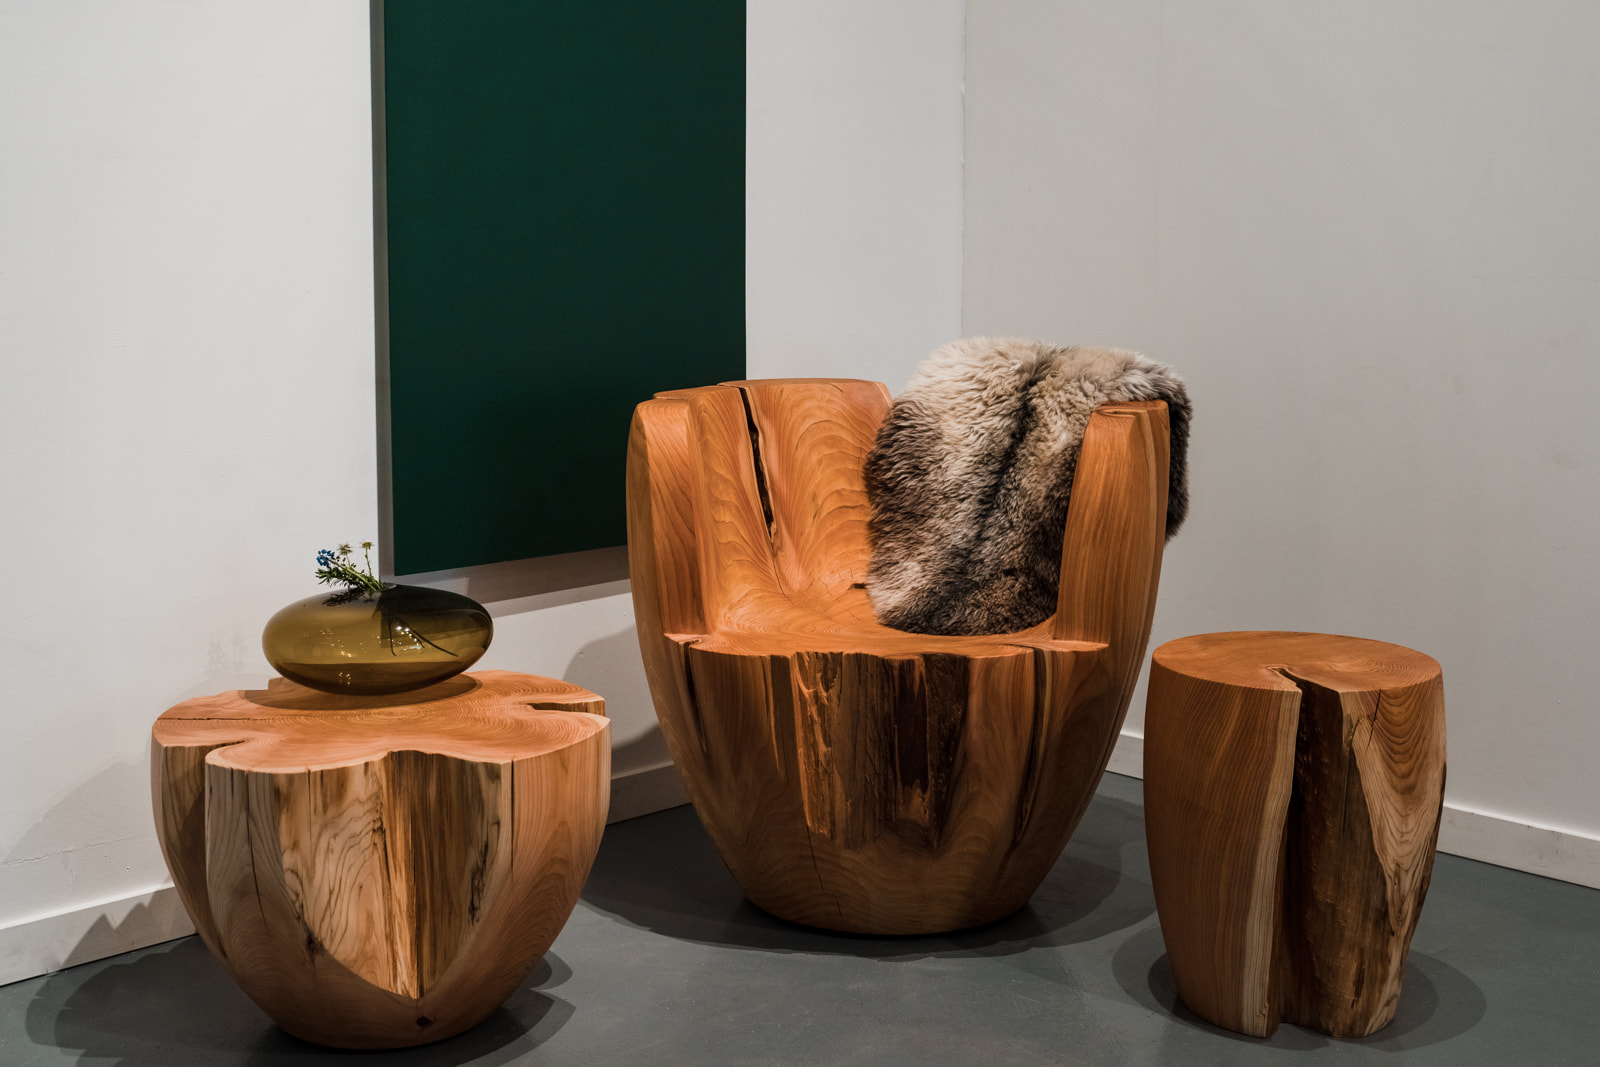 Photo of the daylily chair surrounded by two drum side tables.